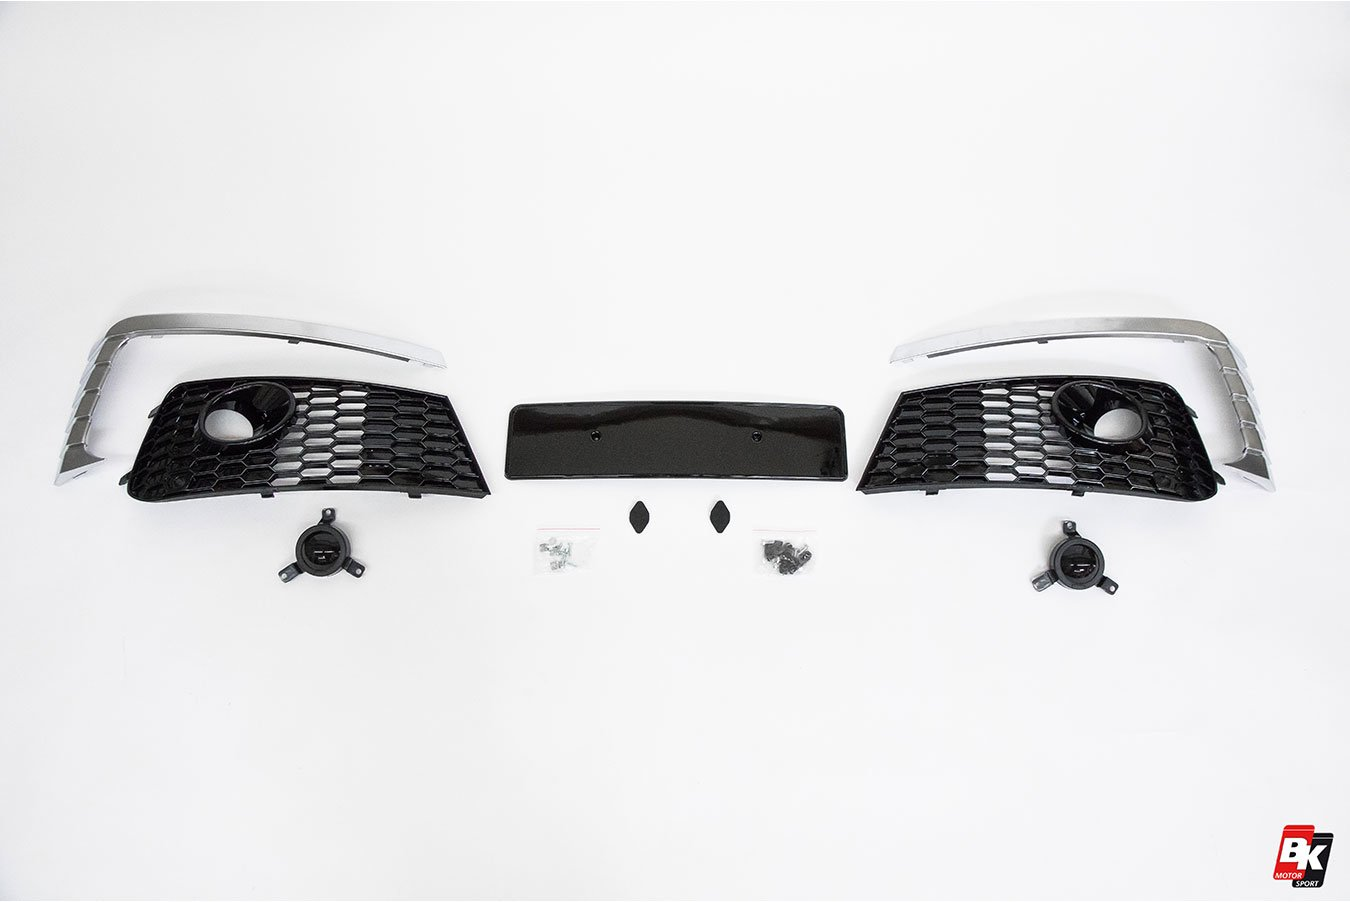 BKM Front Bumper Kit with Front Grille (RS Style - Glossy Black), fits Audi Q7 4M